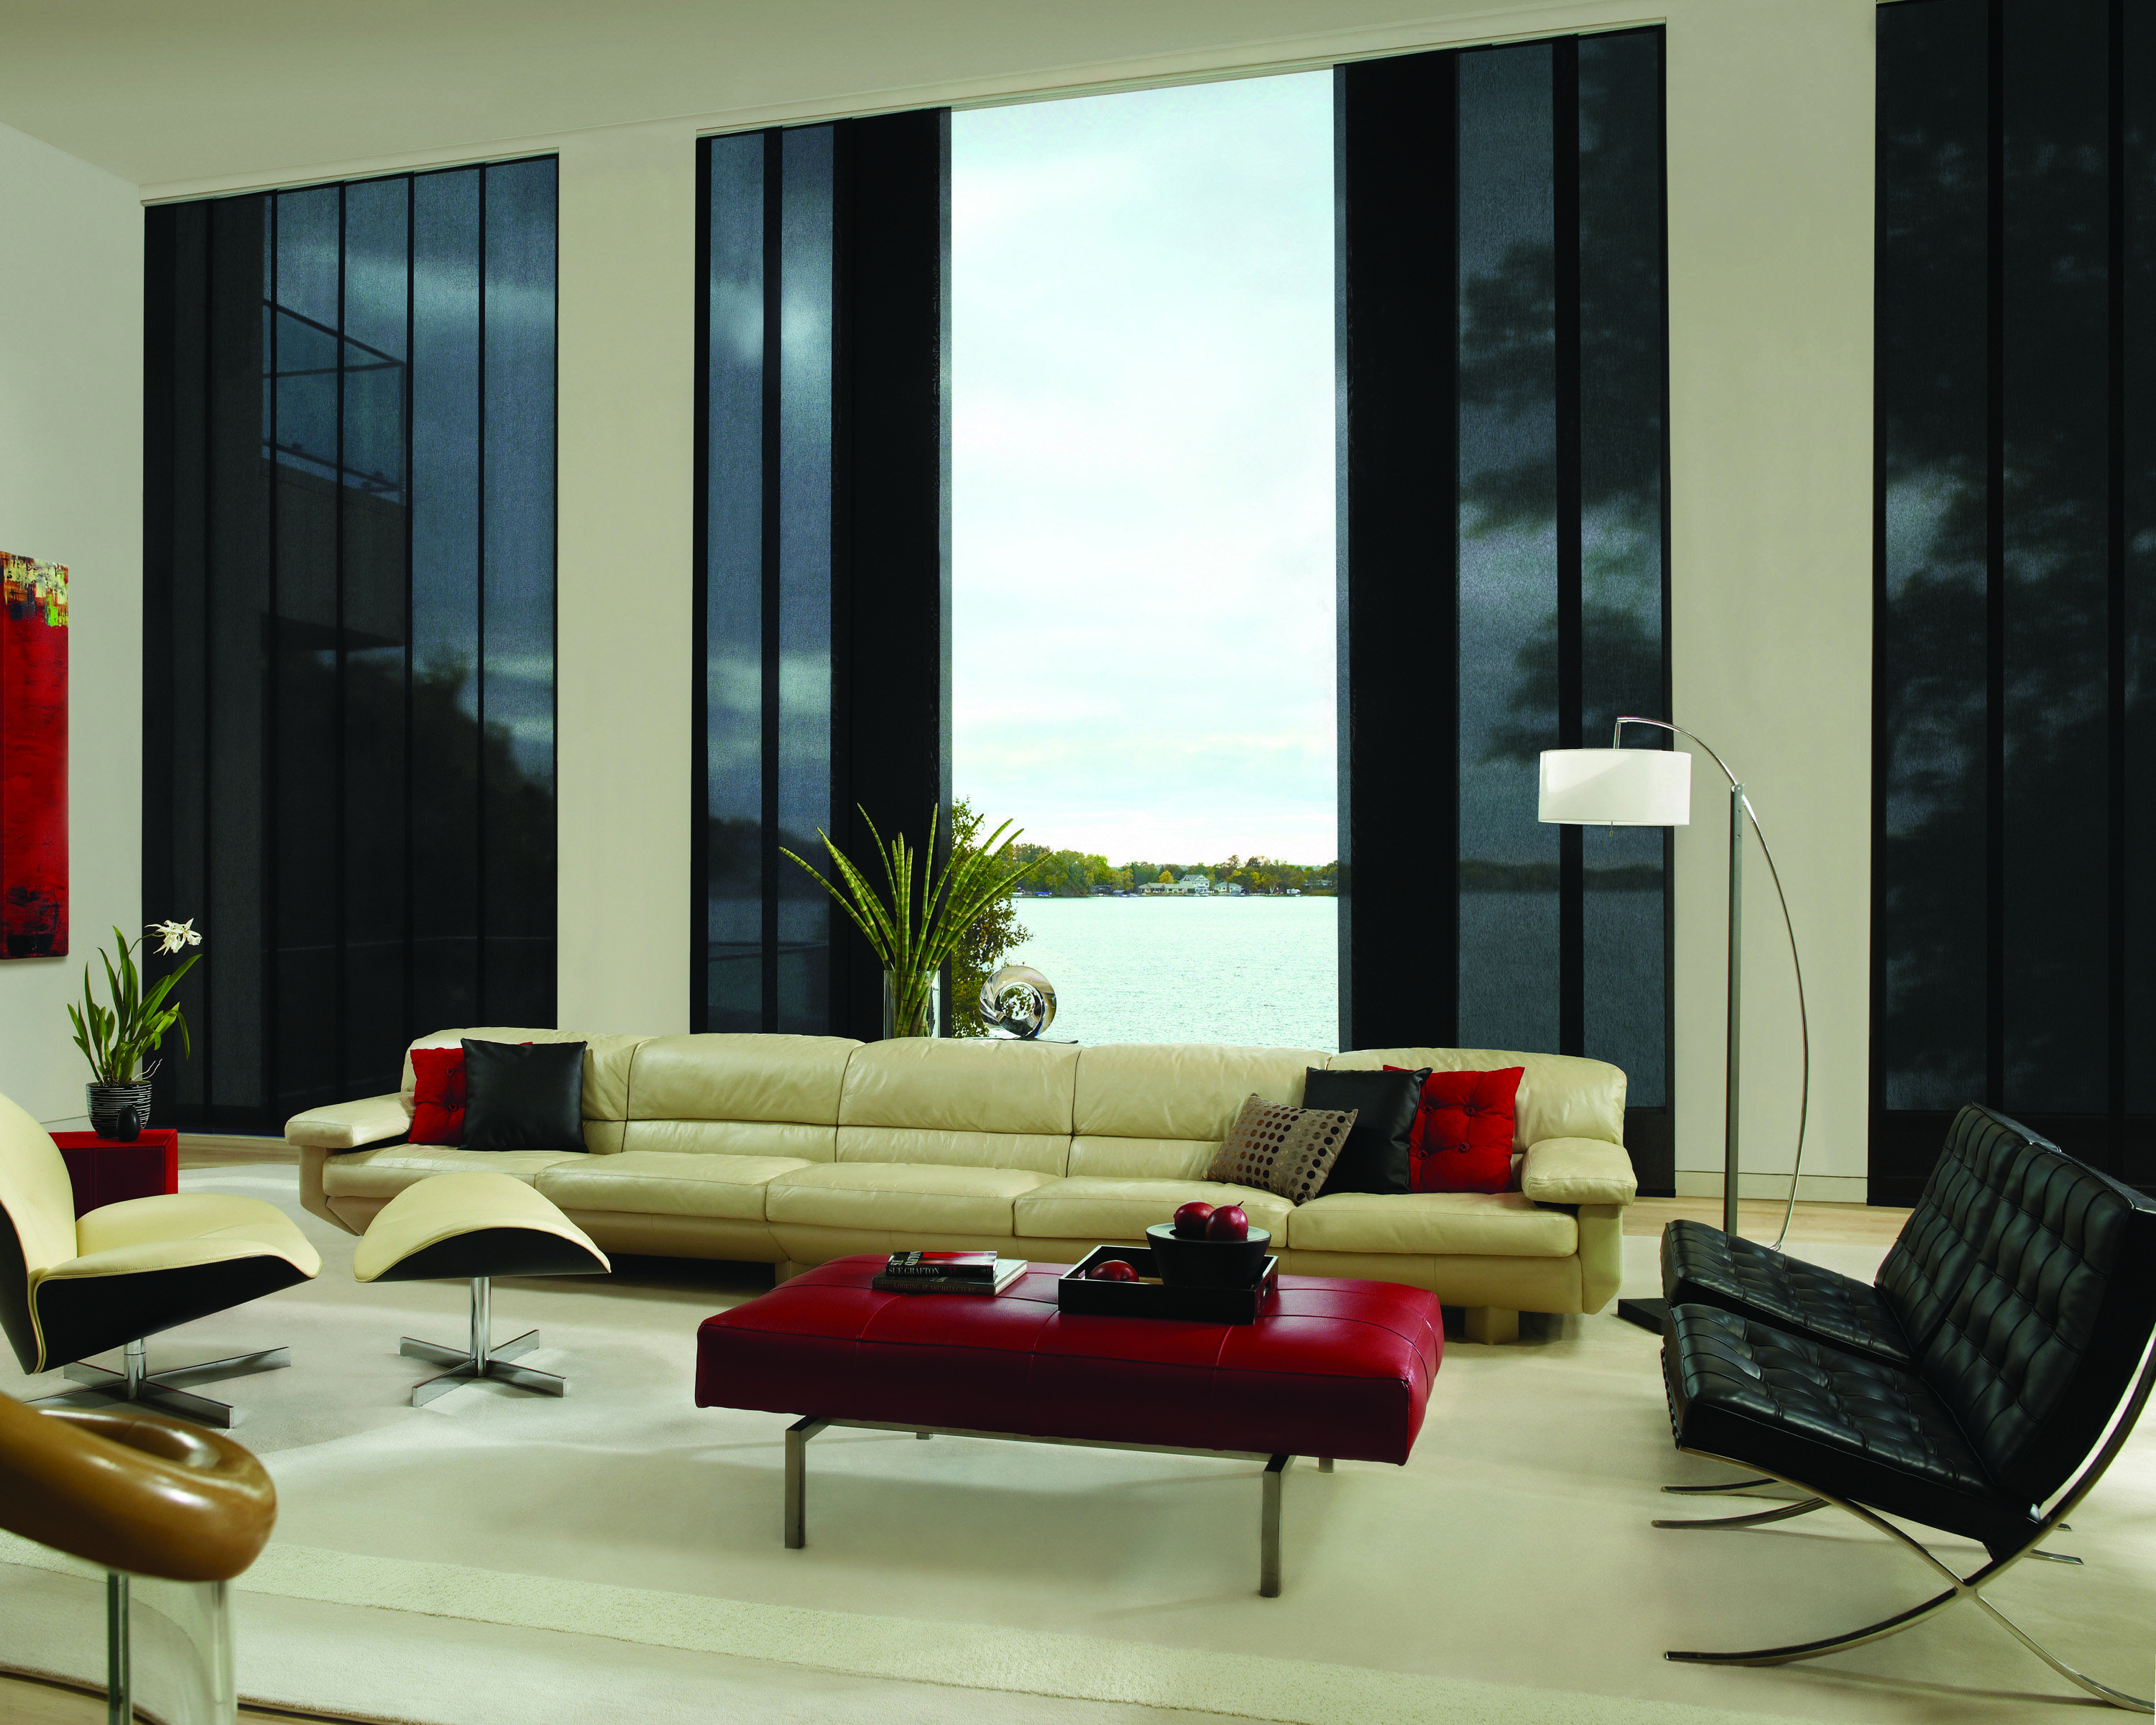 Clean Lines And A Simple Contemporary Look Sliding Panels Offer